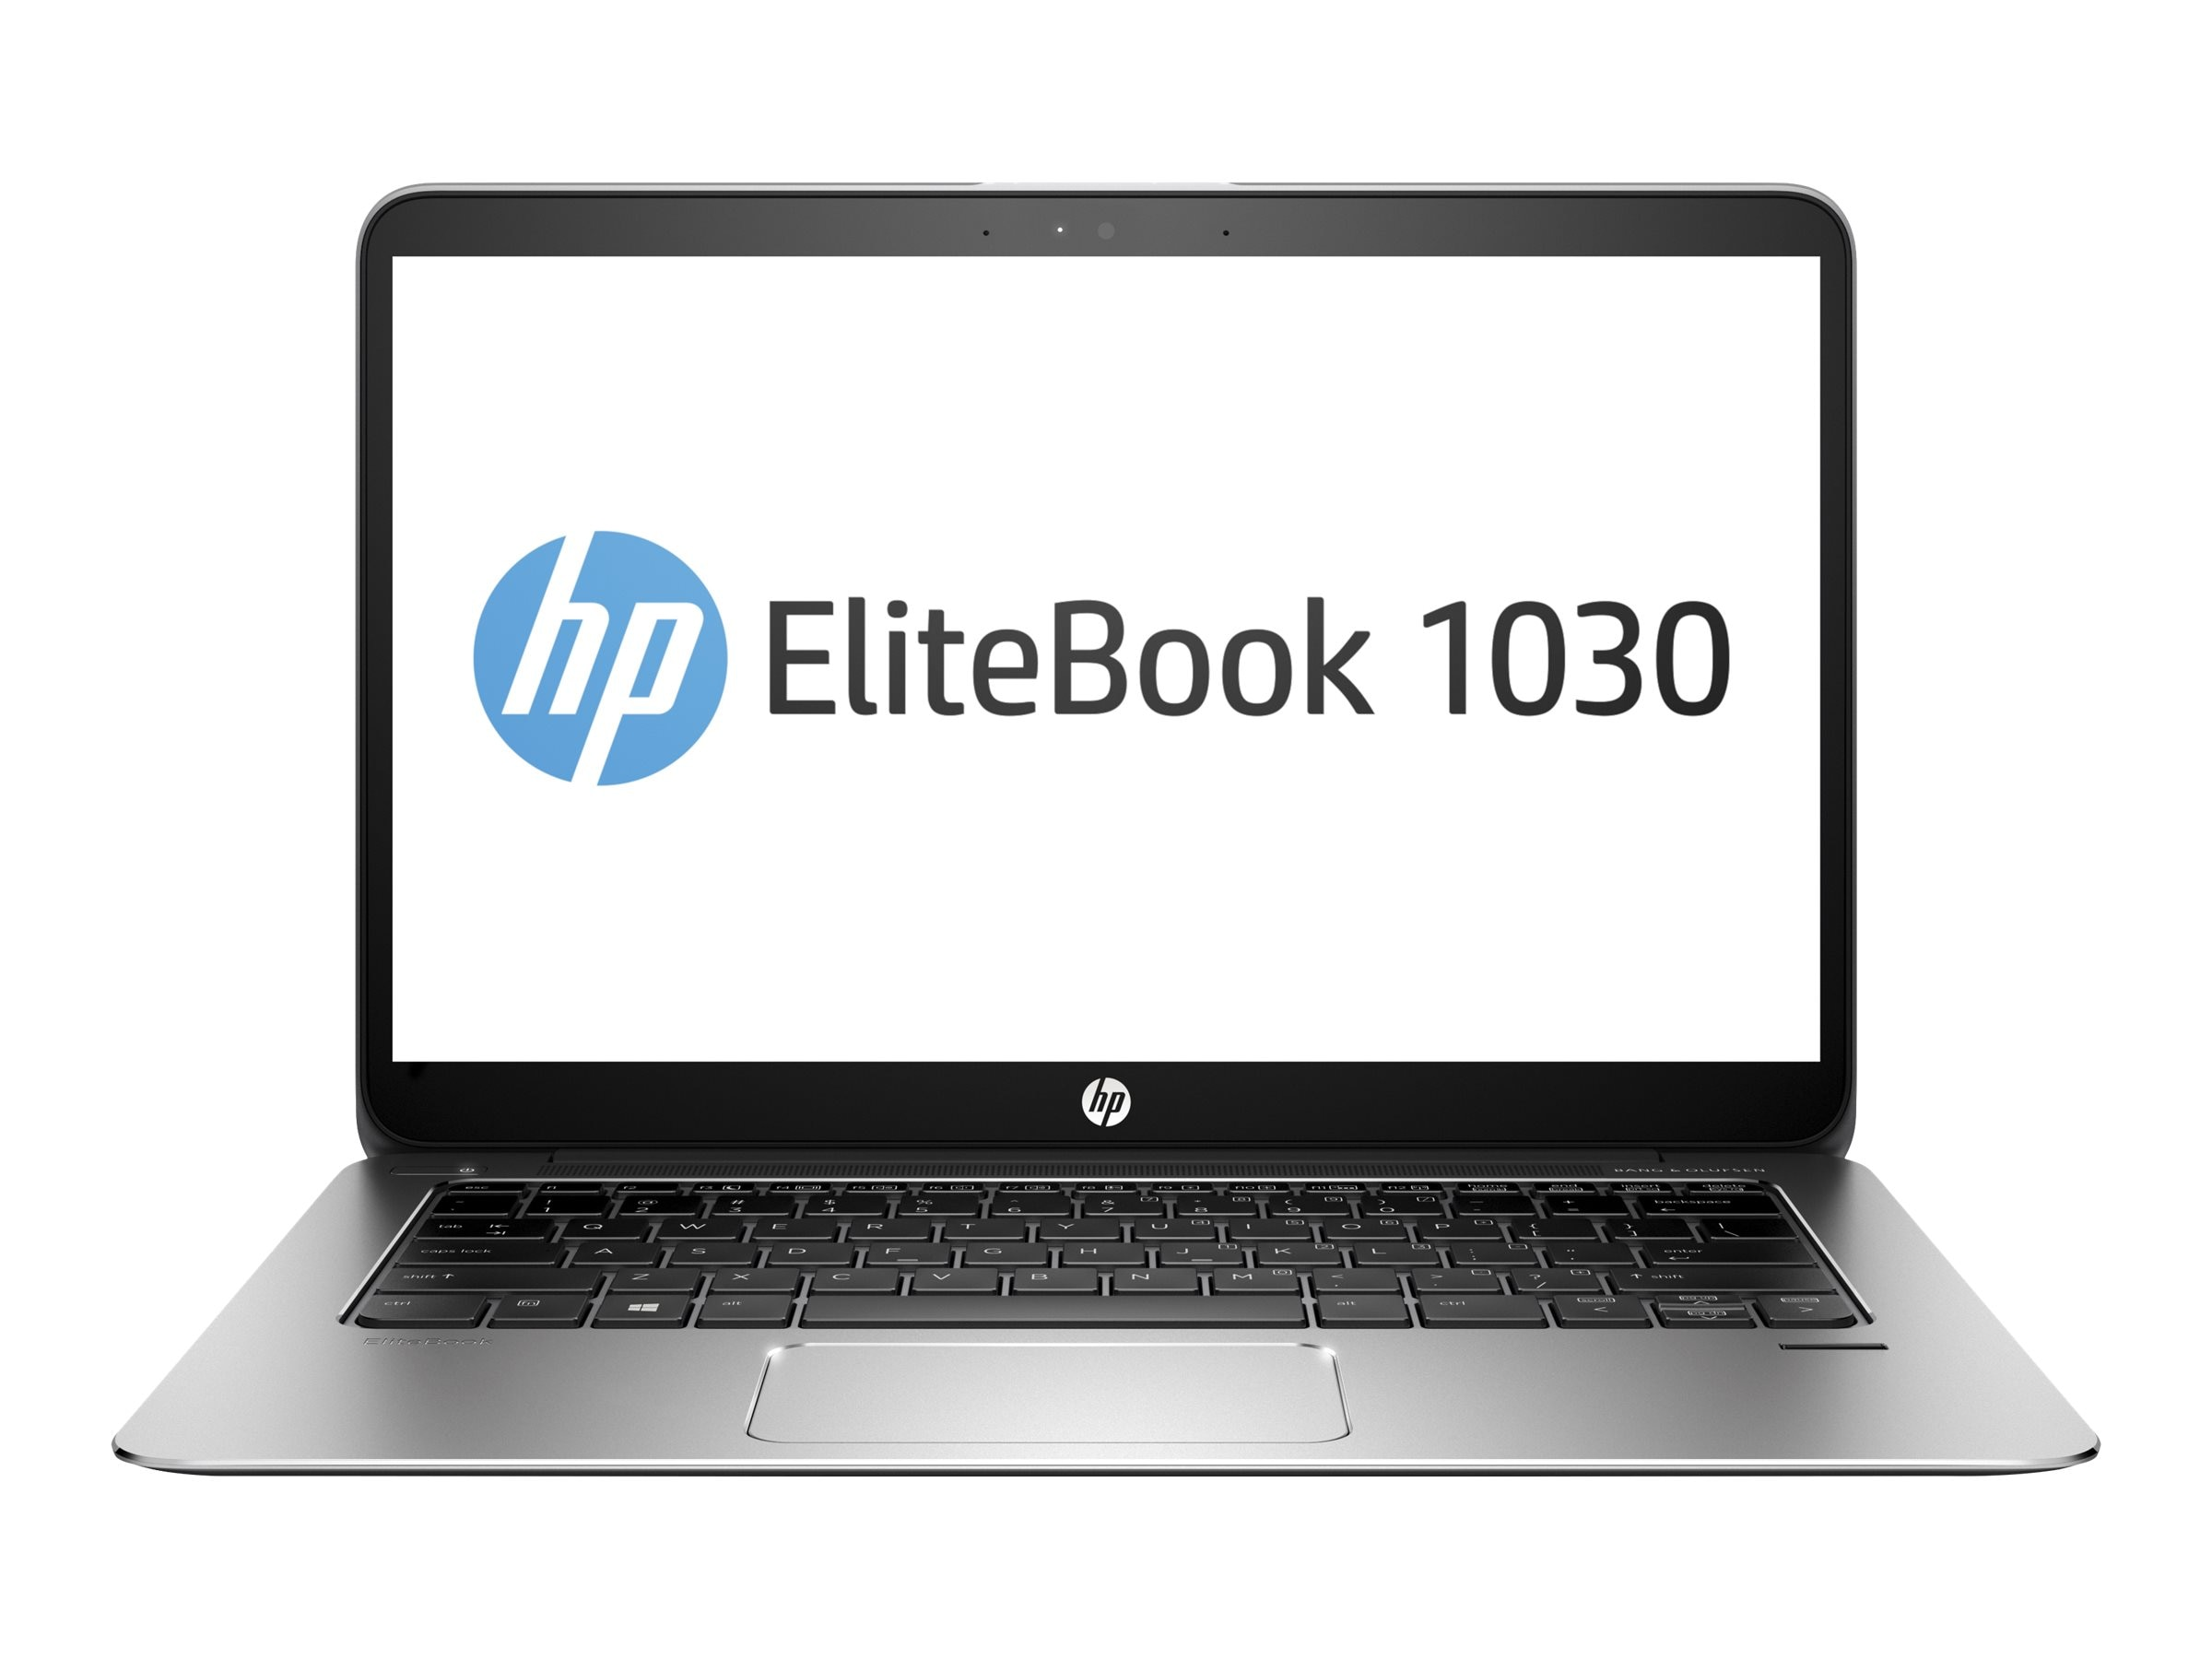 HP EliteBook 1030 G1 1.2GHz Core m7 13.3in display, W0T08UT#ABA